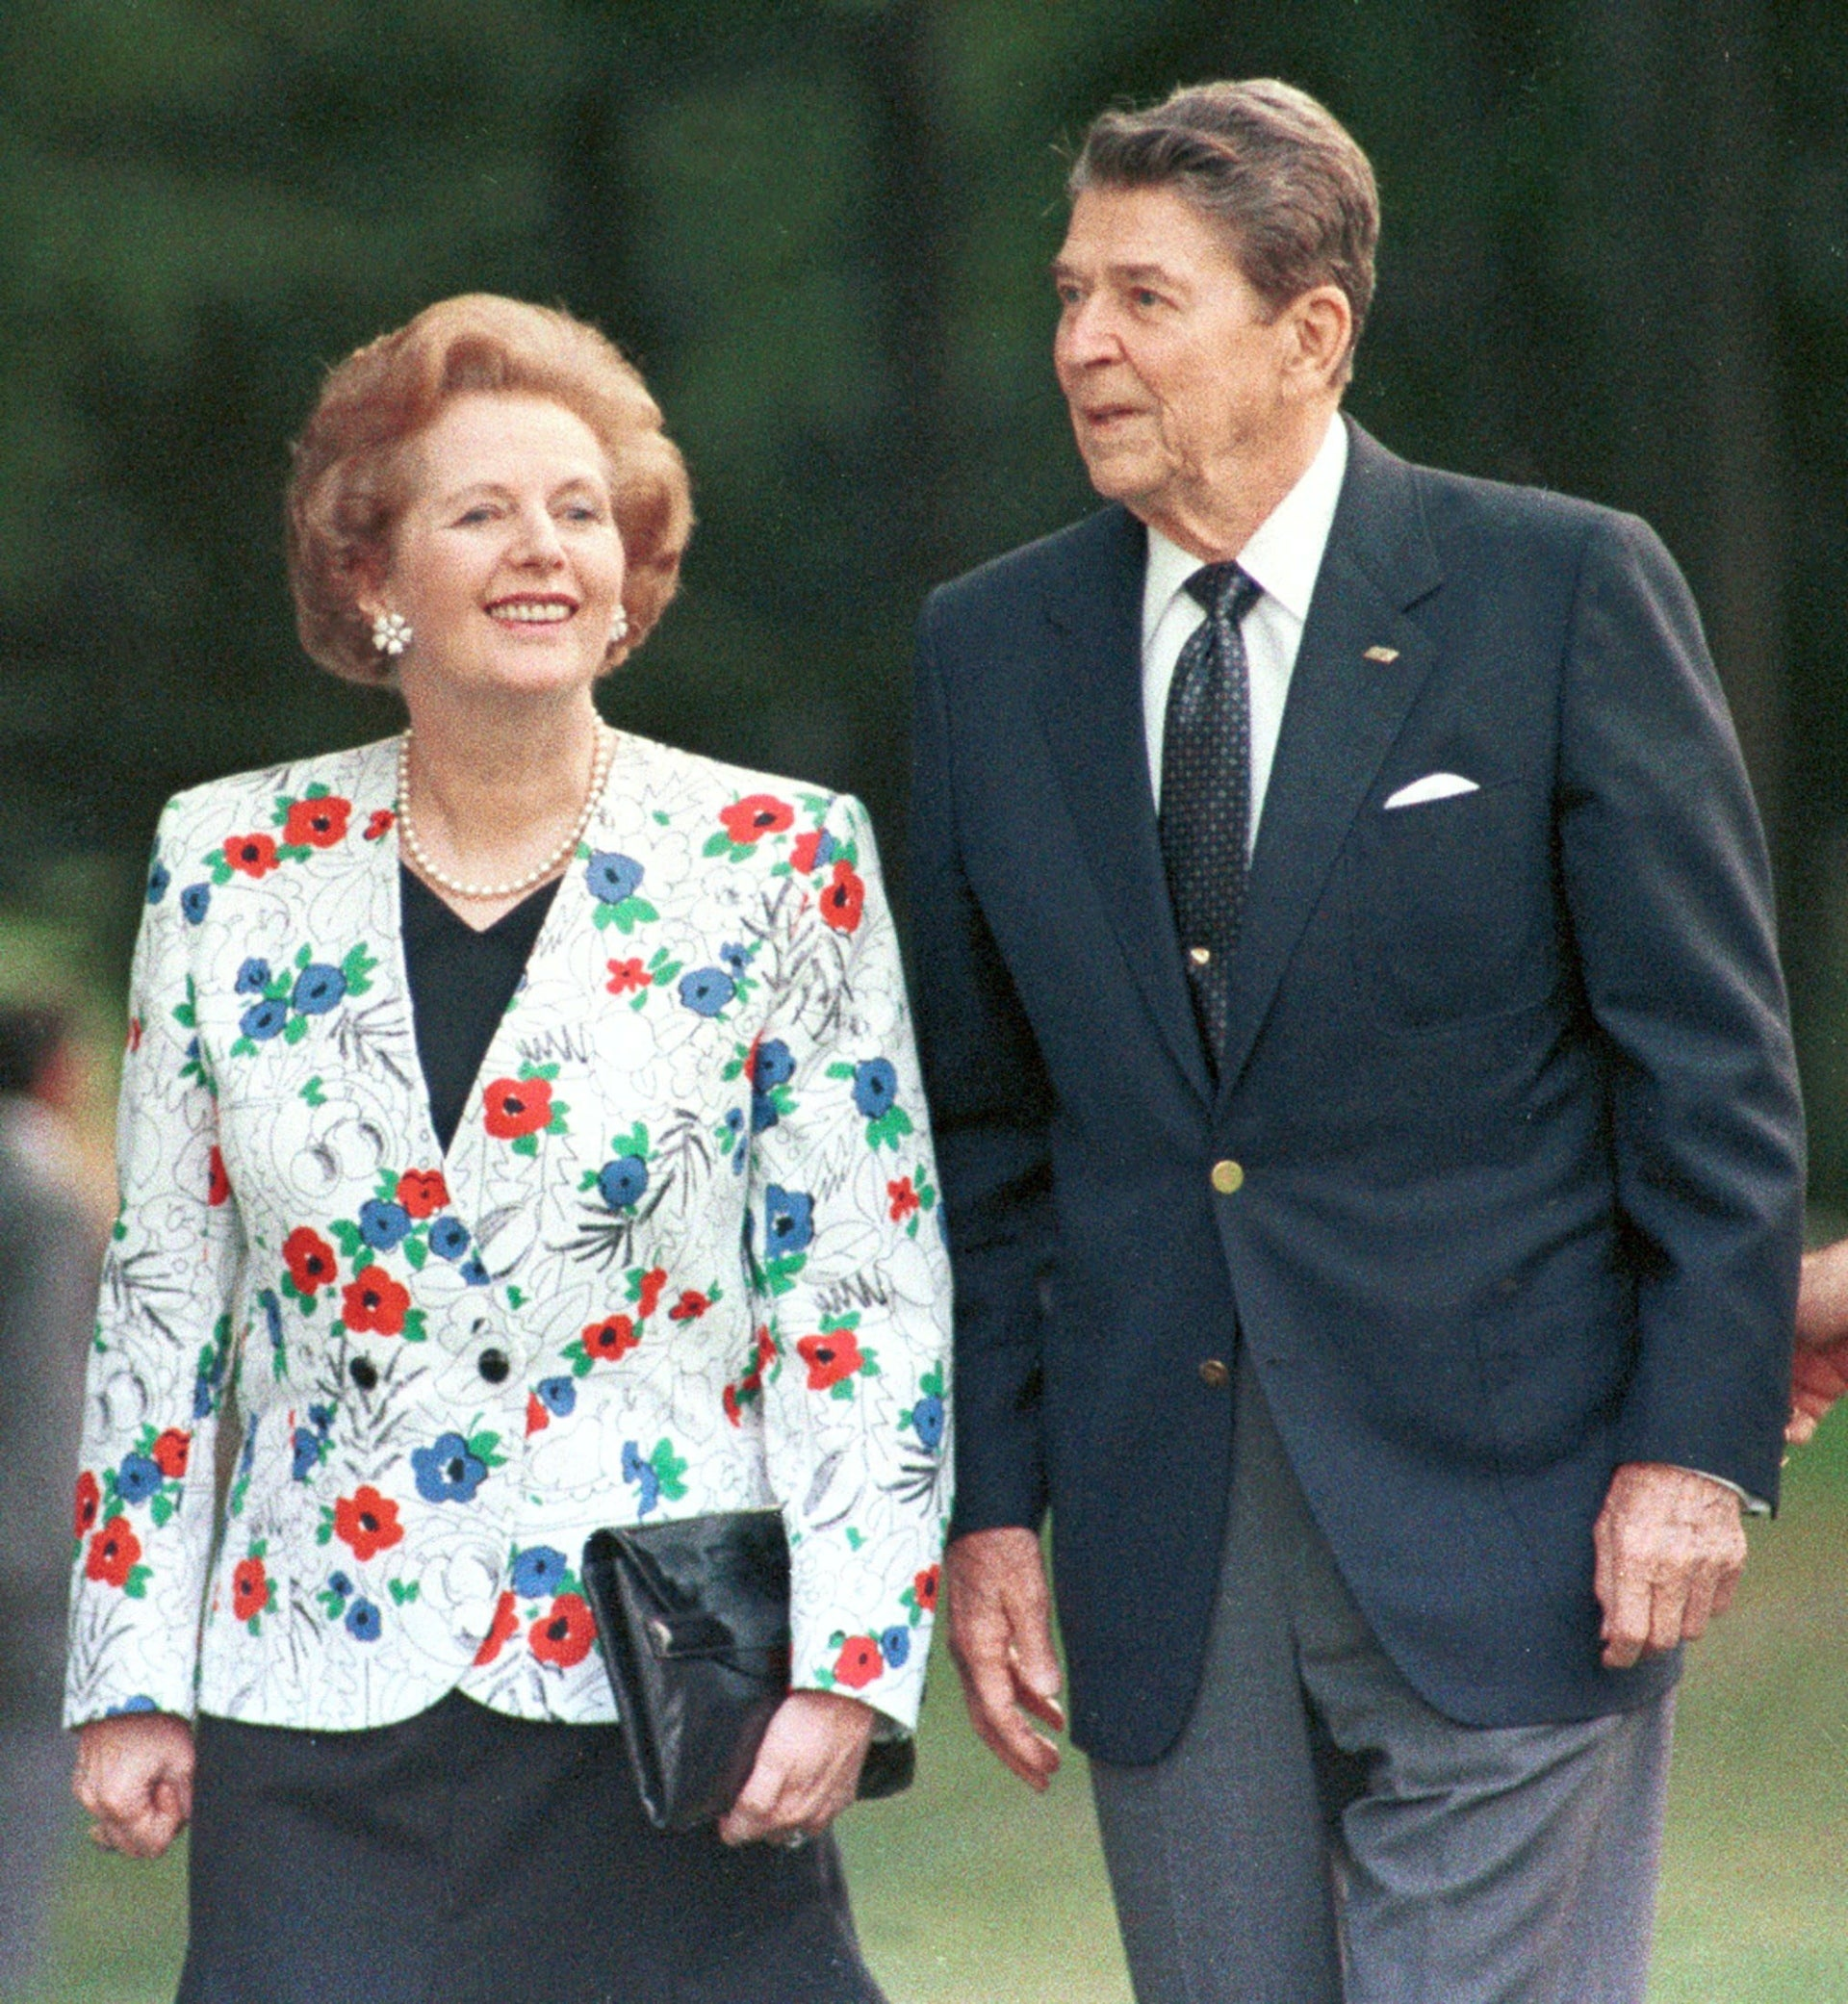 Former U.S. President Ronald Reagan and former British Prime Minister Margaret Thatcher in 1988. Promised to 'roll back the welfare state'